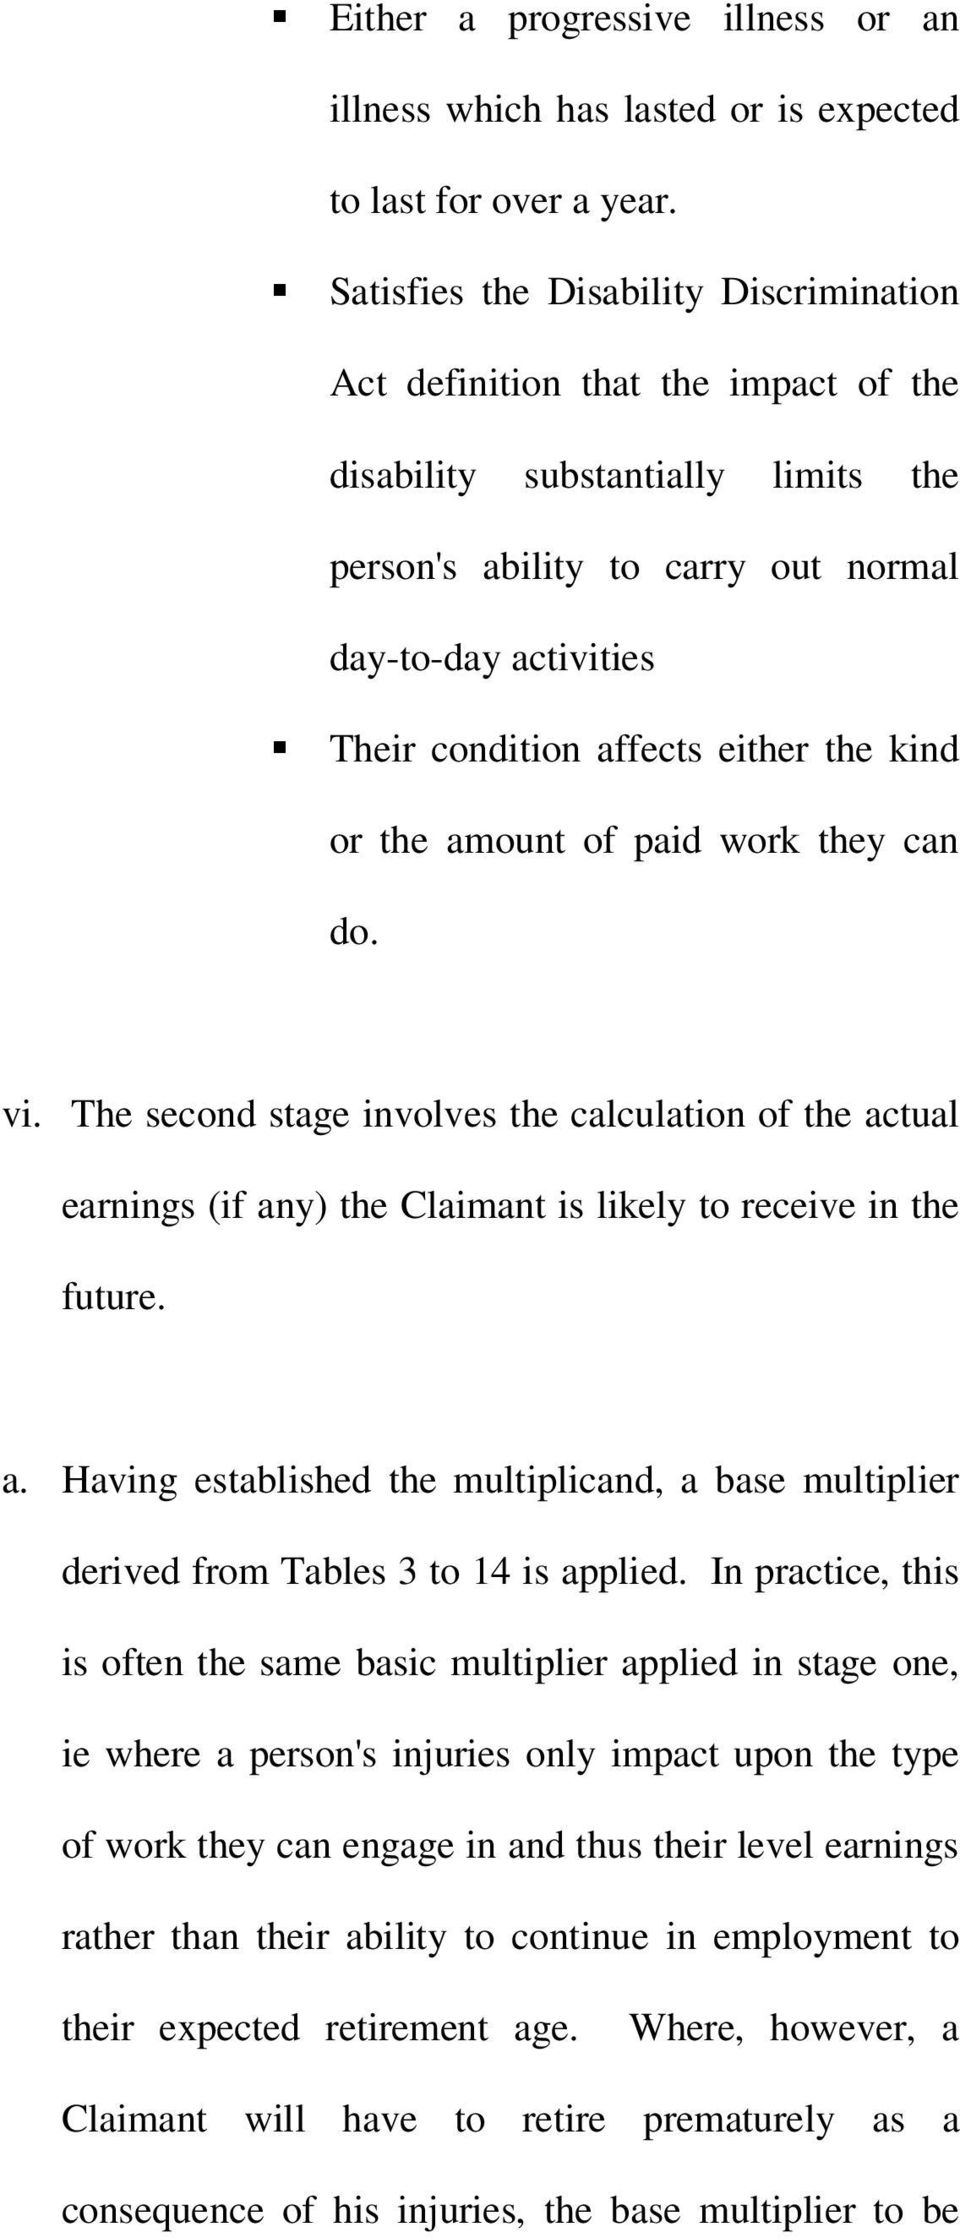 either the kind or the amount of paid work they can do. vi. The second stage involves the calculation of the actual earnings (if any) the Claimant is likely to receive in the future. a. Having established the multiplicand, a base multiplier derived from Tables 3 to 14 is applied.